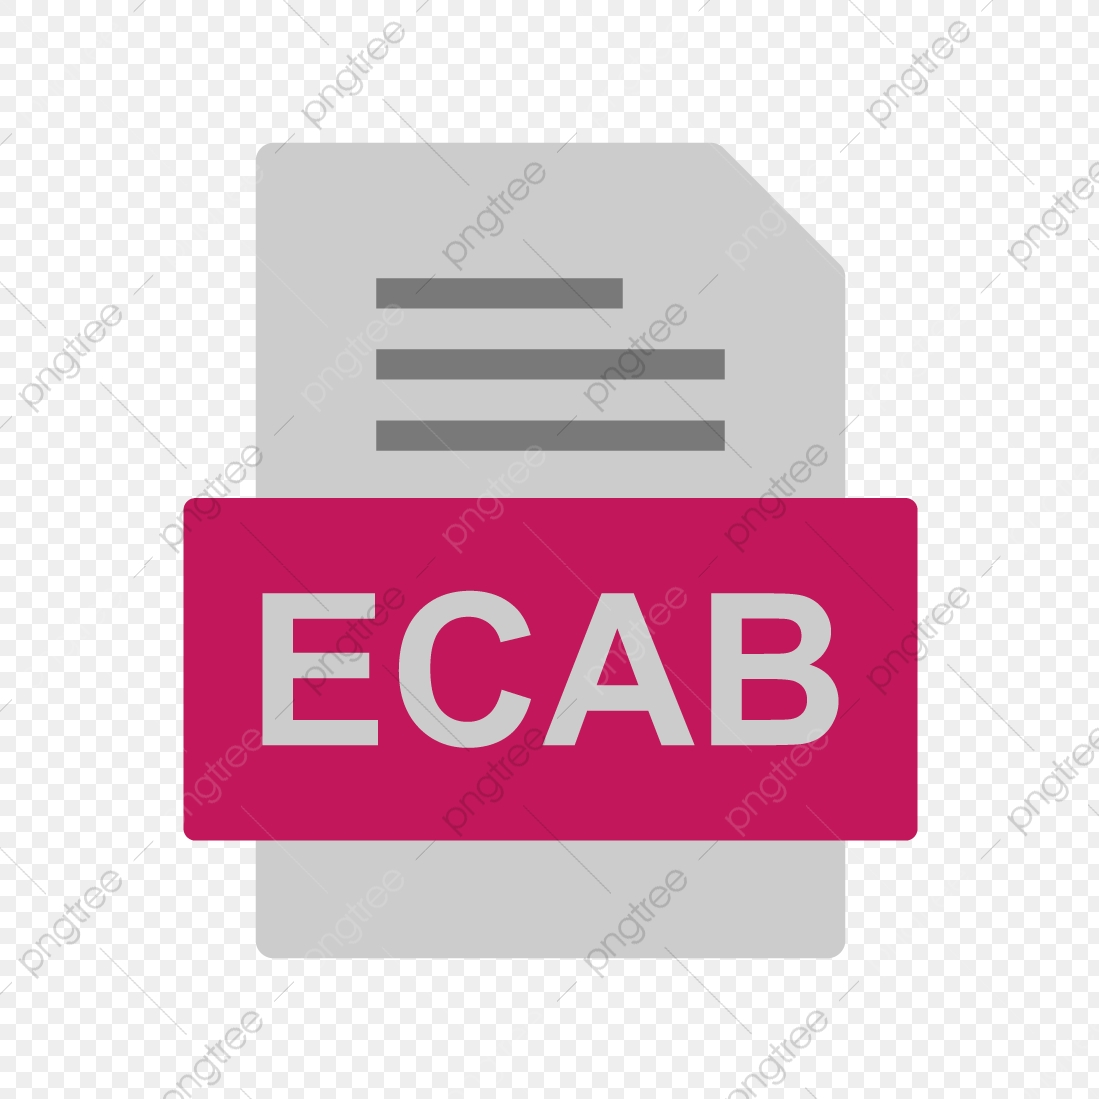 ECAB File Document Icon, Ecab, Document, File PNG and Vector